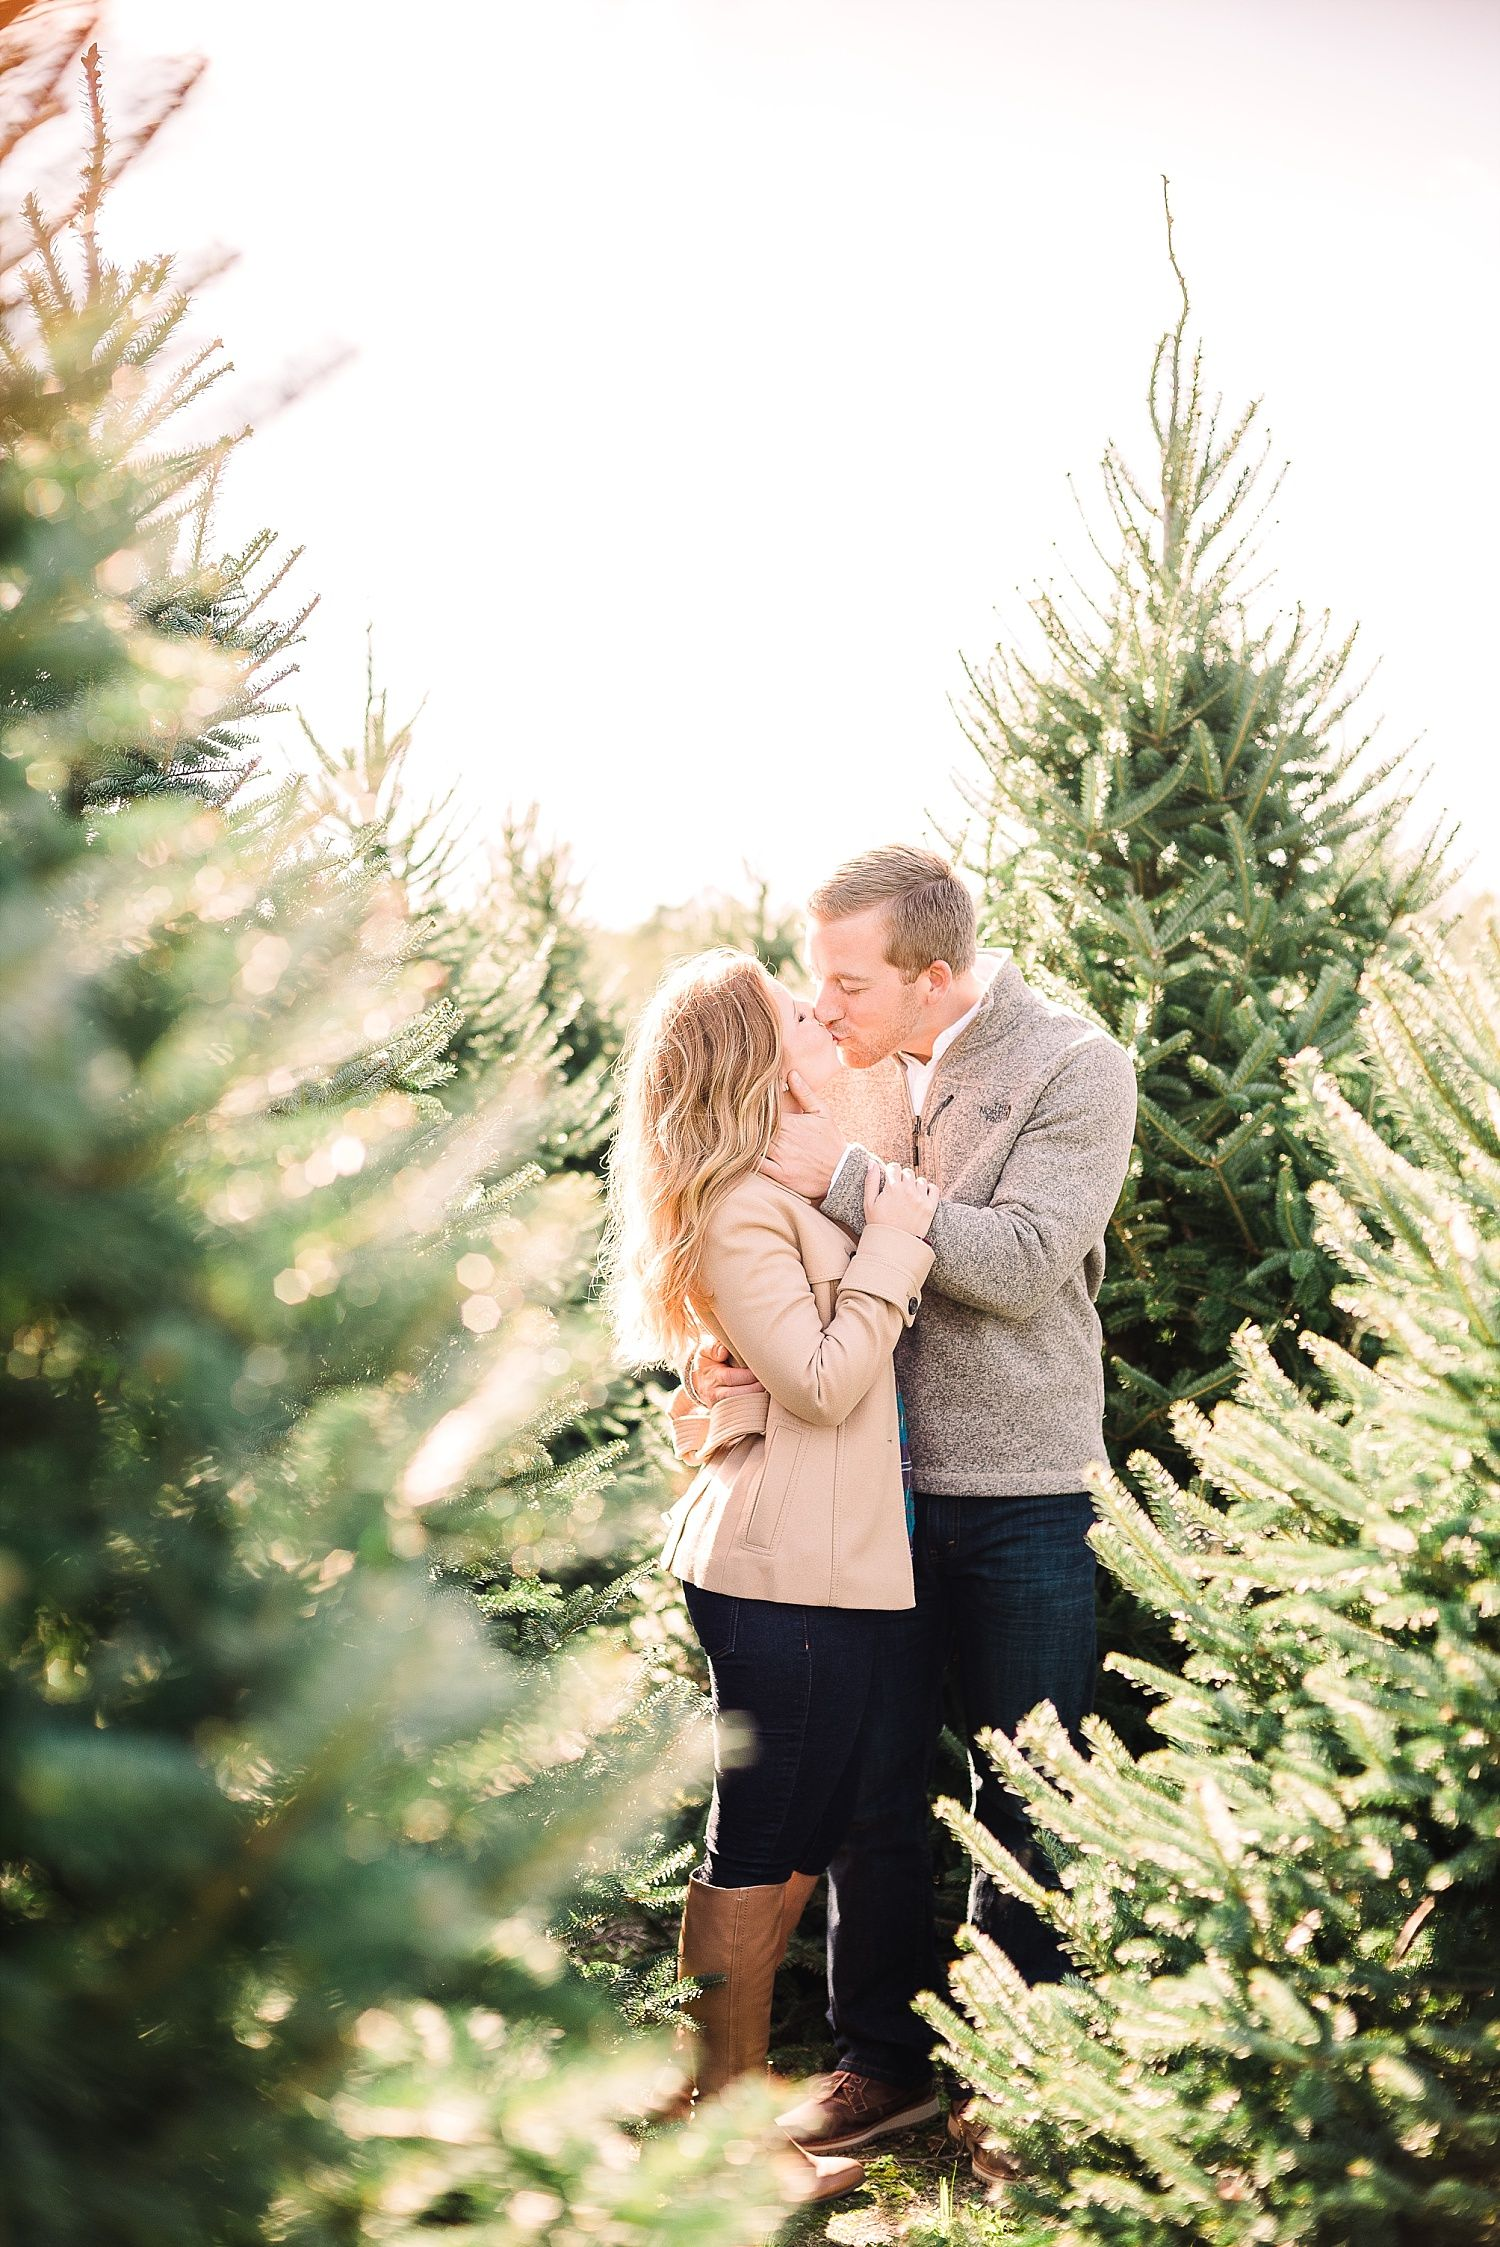 Christmas Tree Farm Engagement Session In 2020 Christmas Tree Farm Photos Christmas Engagement Photos Christmas Engagement Pictures